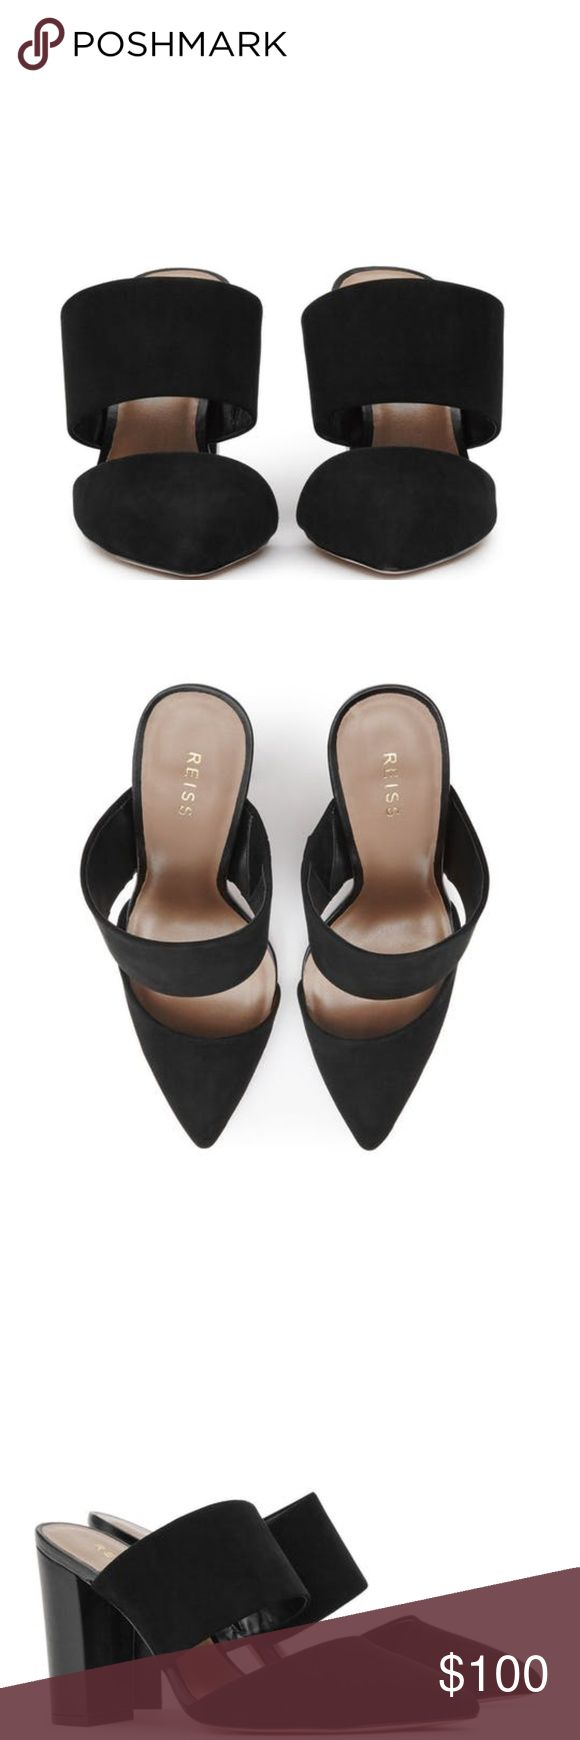 "LOOKING FOR *ISO* Cupid Mules Looking for this exact ""Cupid Mules"" from REISS  *price isn't the price range I am looking for, it's just a random amount*  Thank you Reiss Shoes Mules & Clogs"